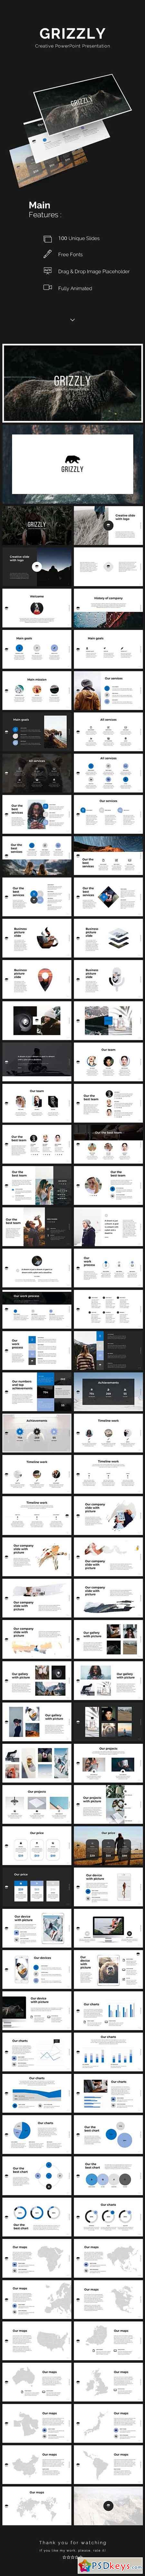 Grizzly PowerPoint Template 20729073